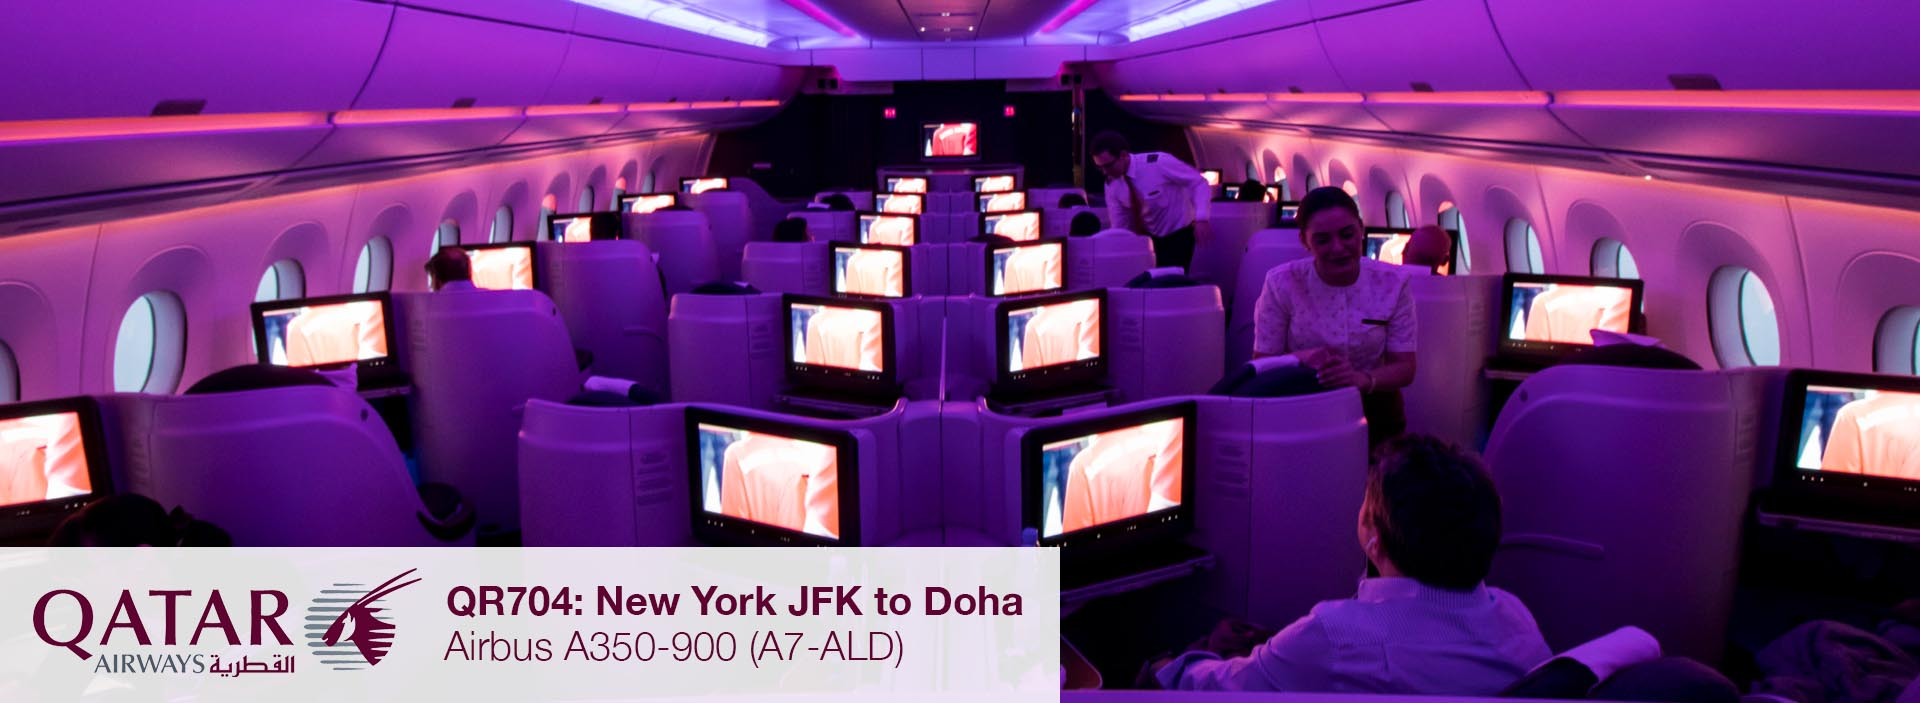 Review qatar airways a350 900 business class from new york to doha flight review qatar airways a350 900 business class from new york jfk to doha stopboris Image collections